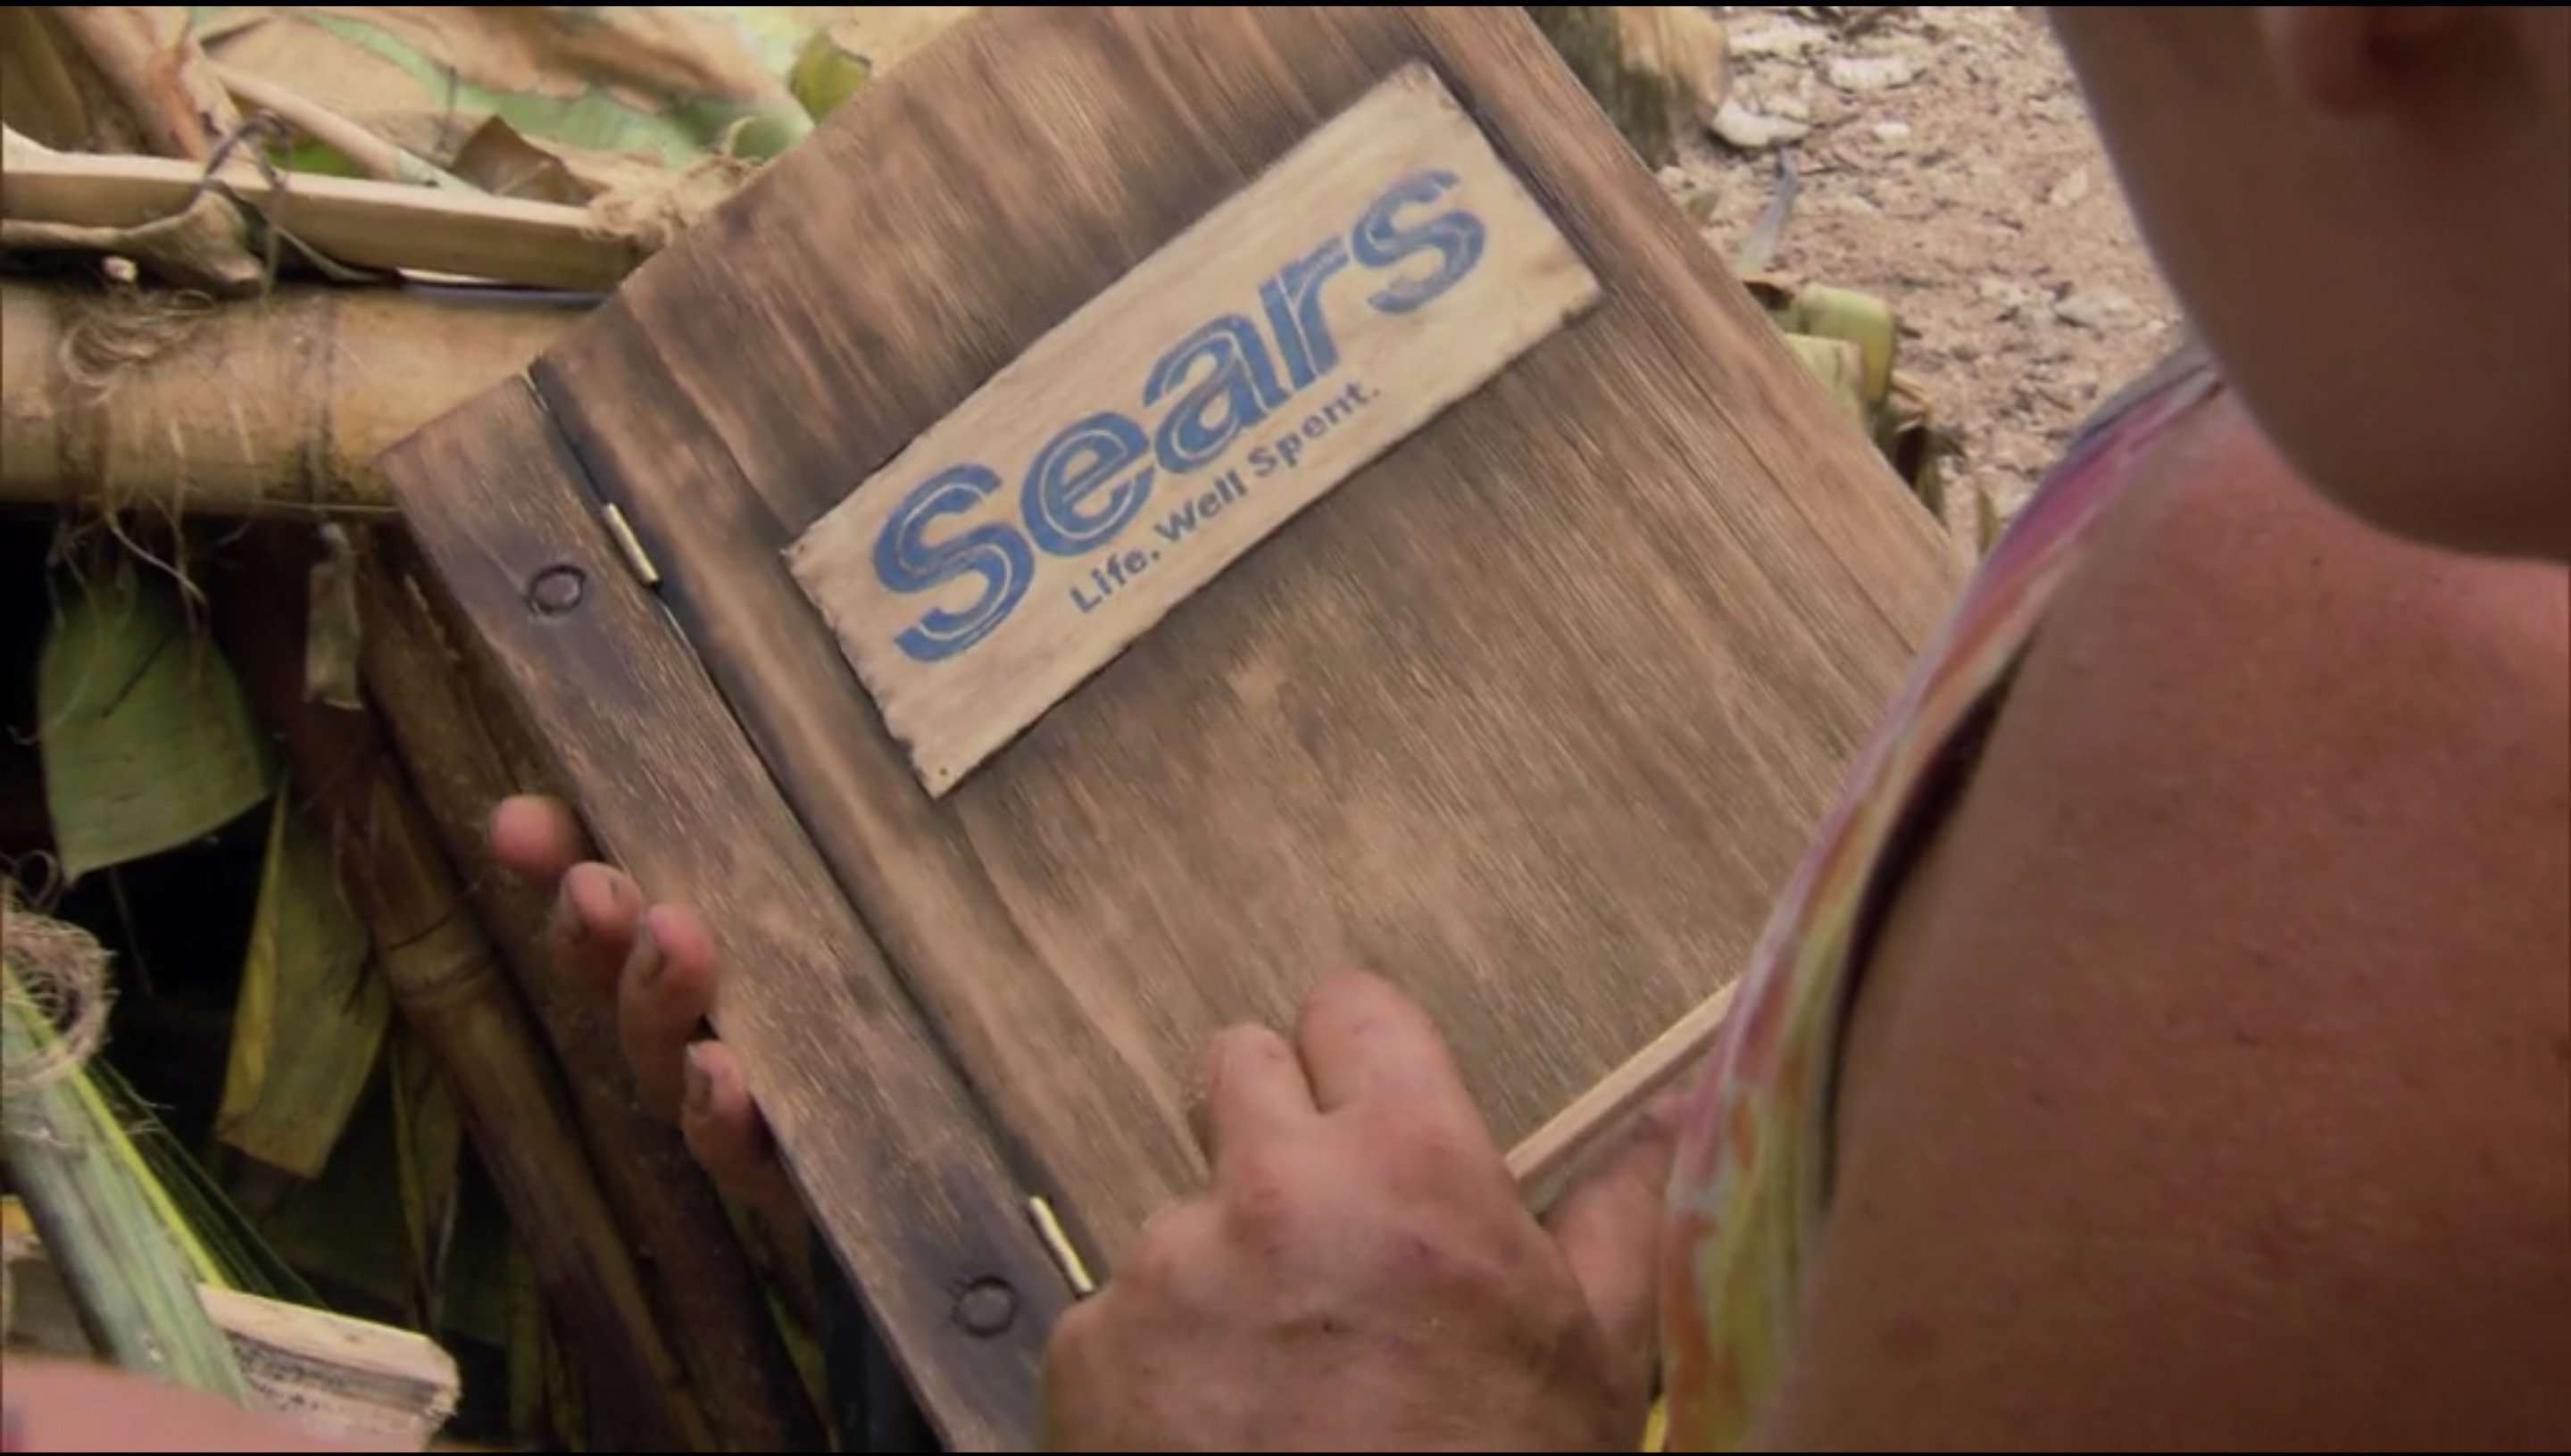 A wooden Sears catalogue